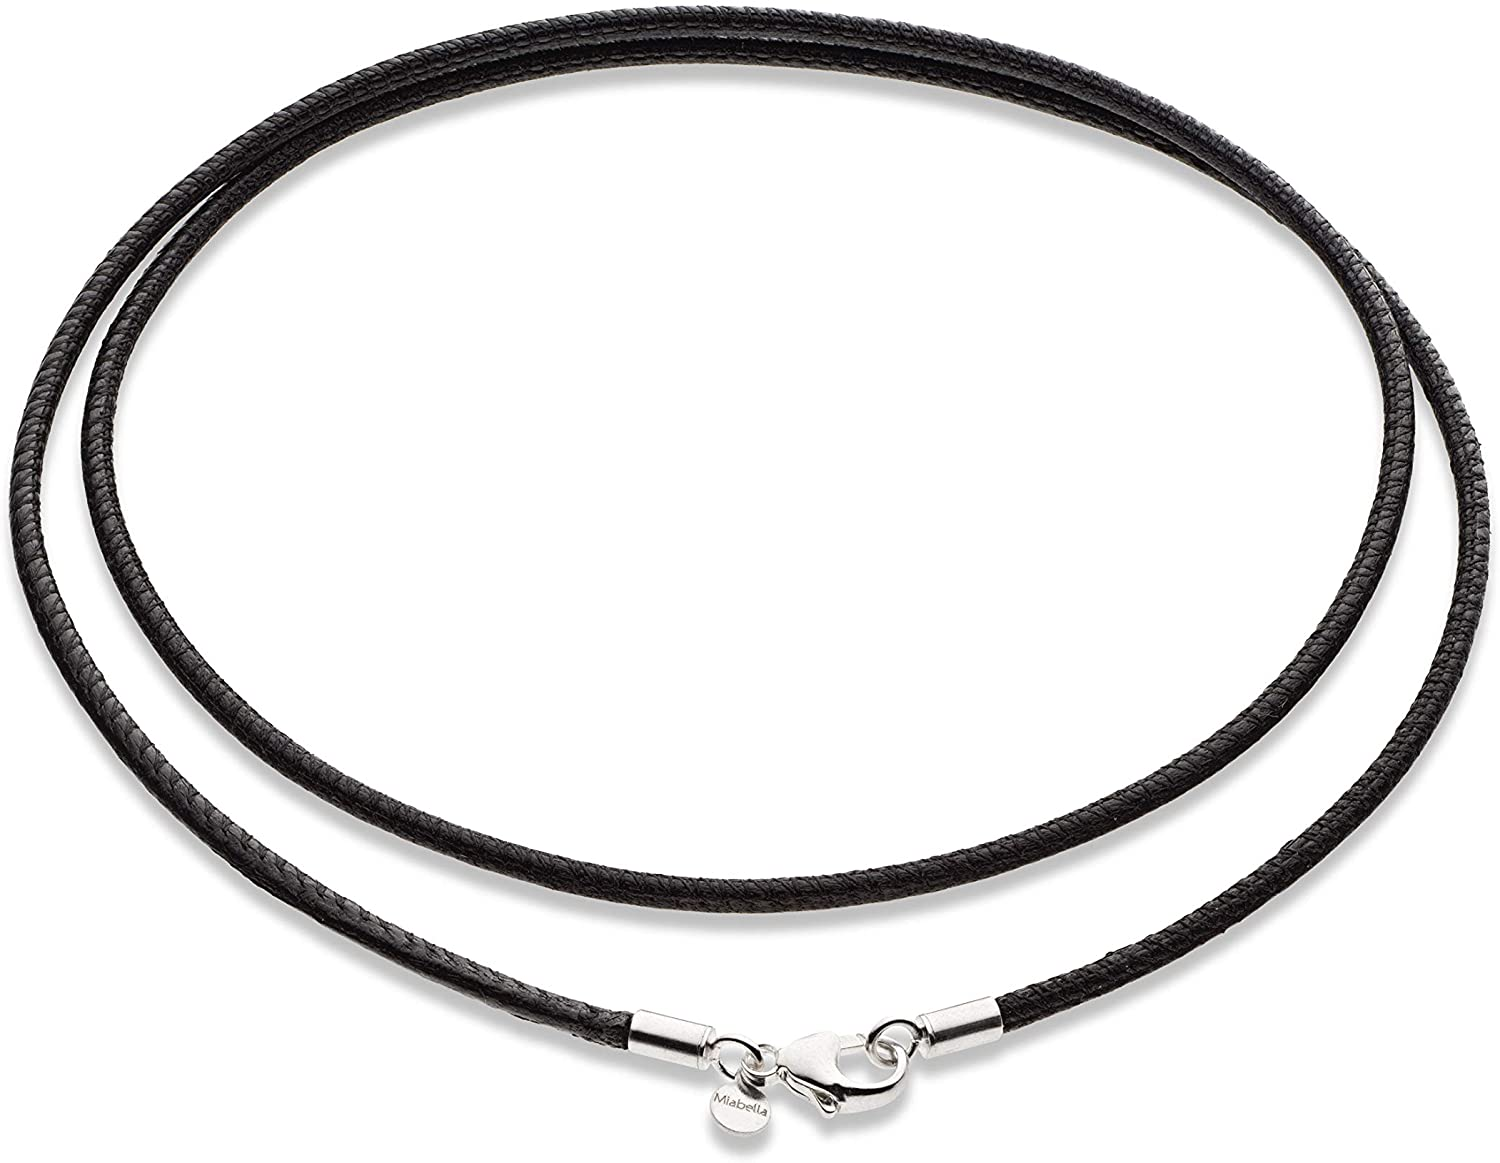 Miabella Genuine Italian 2mm Black or Brown Leather Cord Chain Necklace for Men Women with 925 Sterling Silver Clasp 14, 16, 18, 20, 22, 24, 26 Inch Made in Italy